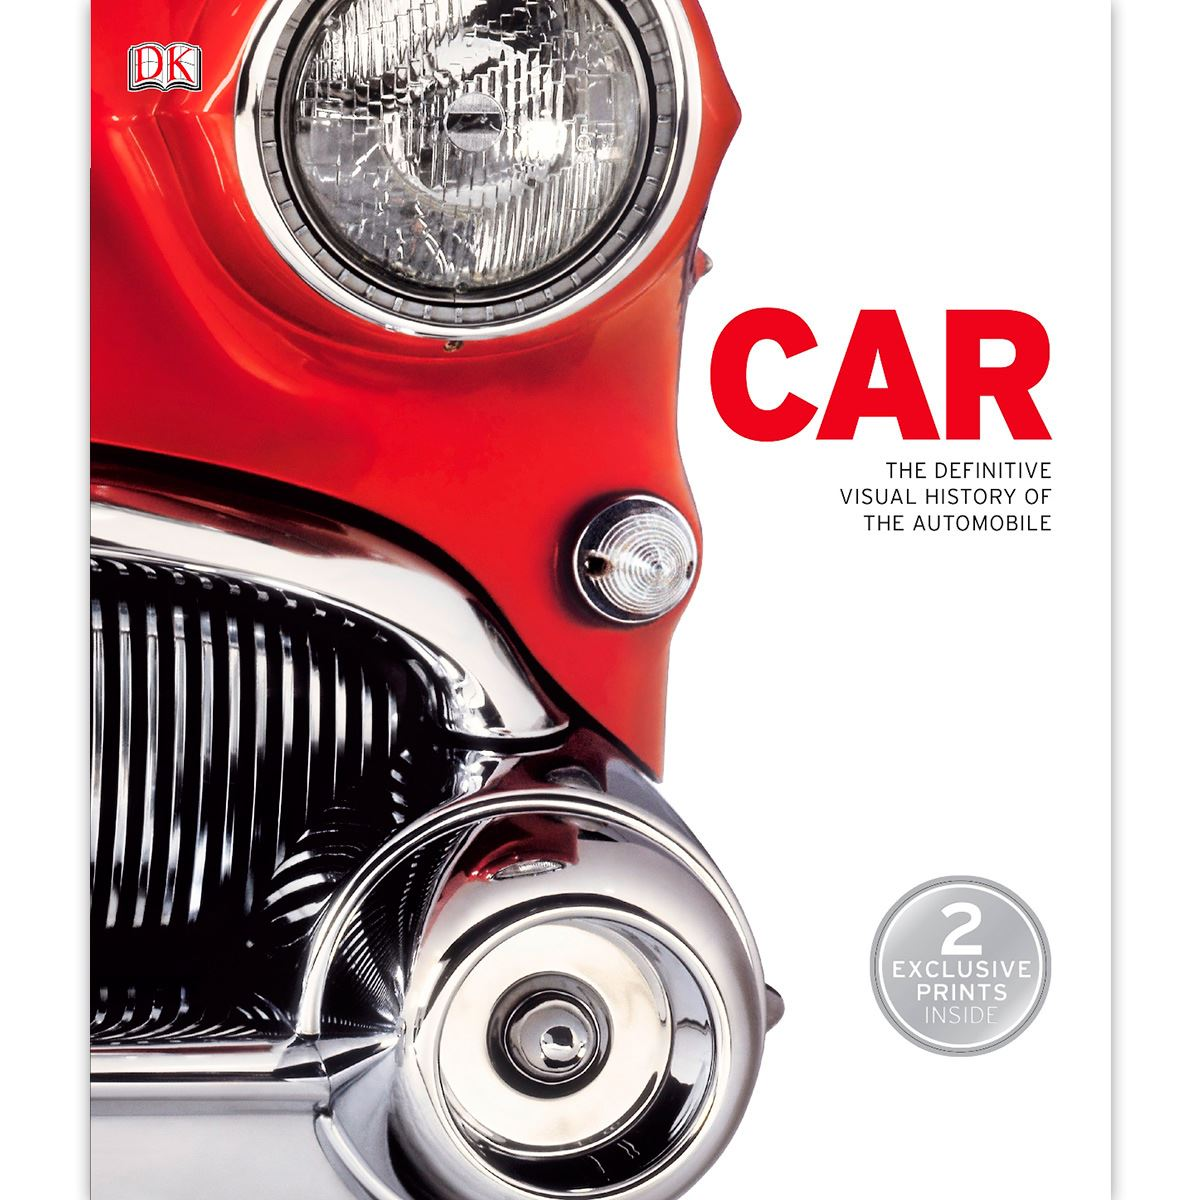 Car, Definitive Visual History